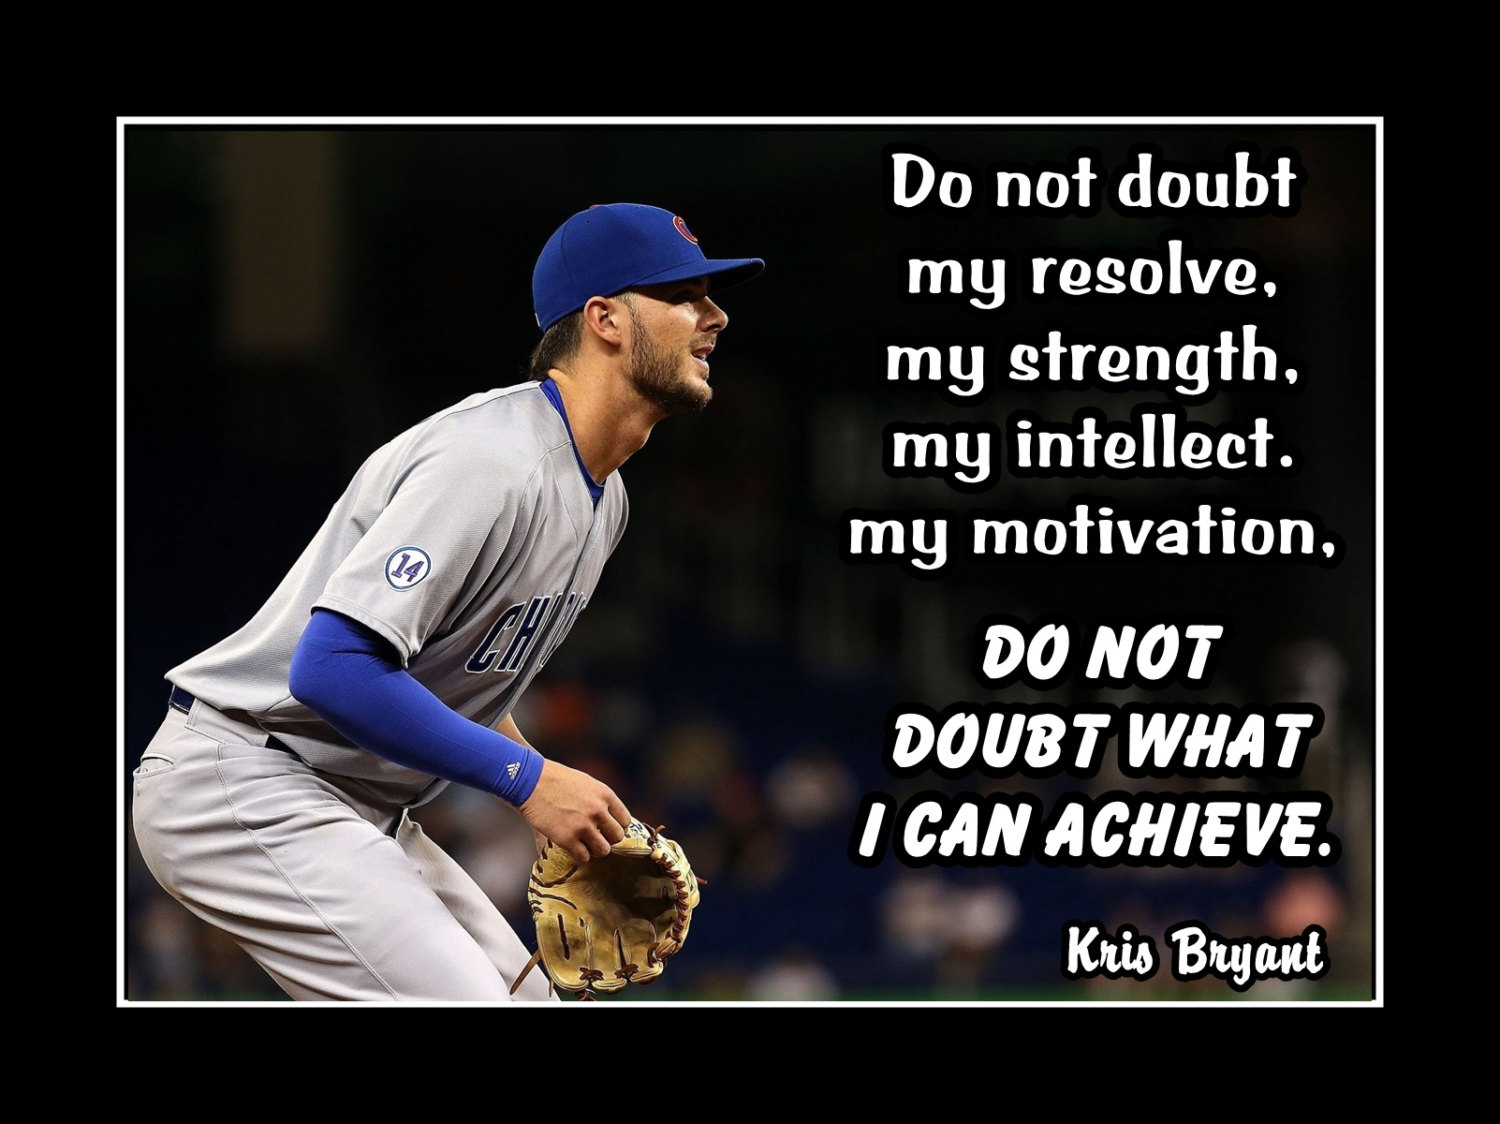 Kris Bryant Baseball Motivation Poster, Inspirational Quote Wall Art, Son  Wall Decor, Do Not Doubt My Resolve, Free Ship